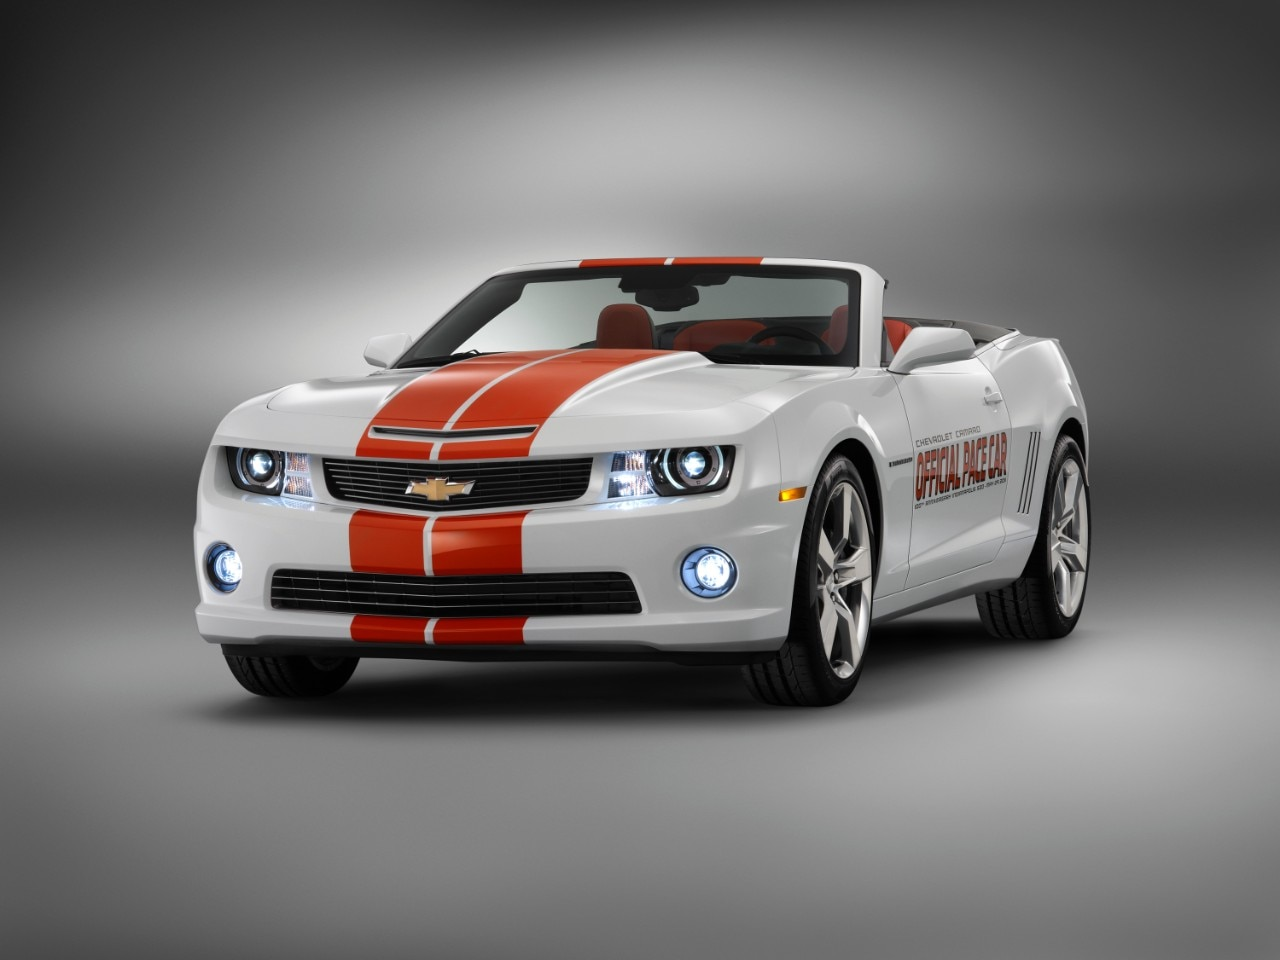 All Chevy chevy cars 2011 : 2011 Indianapolis 500 Pace Car Replicas To Be Offered To Customers